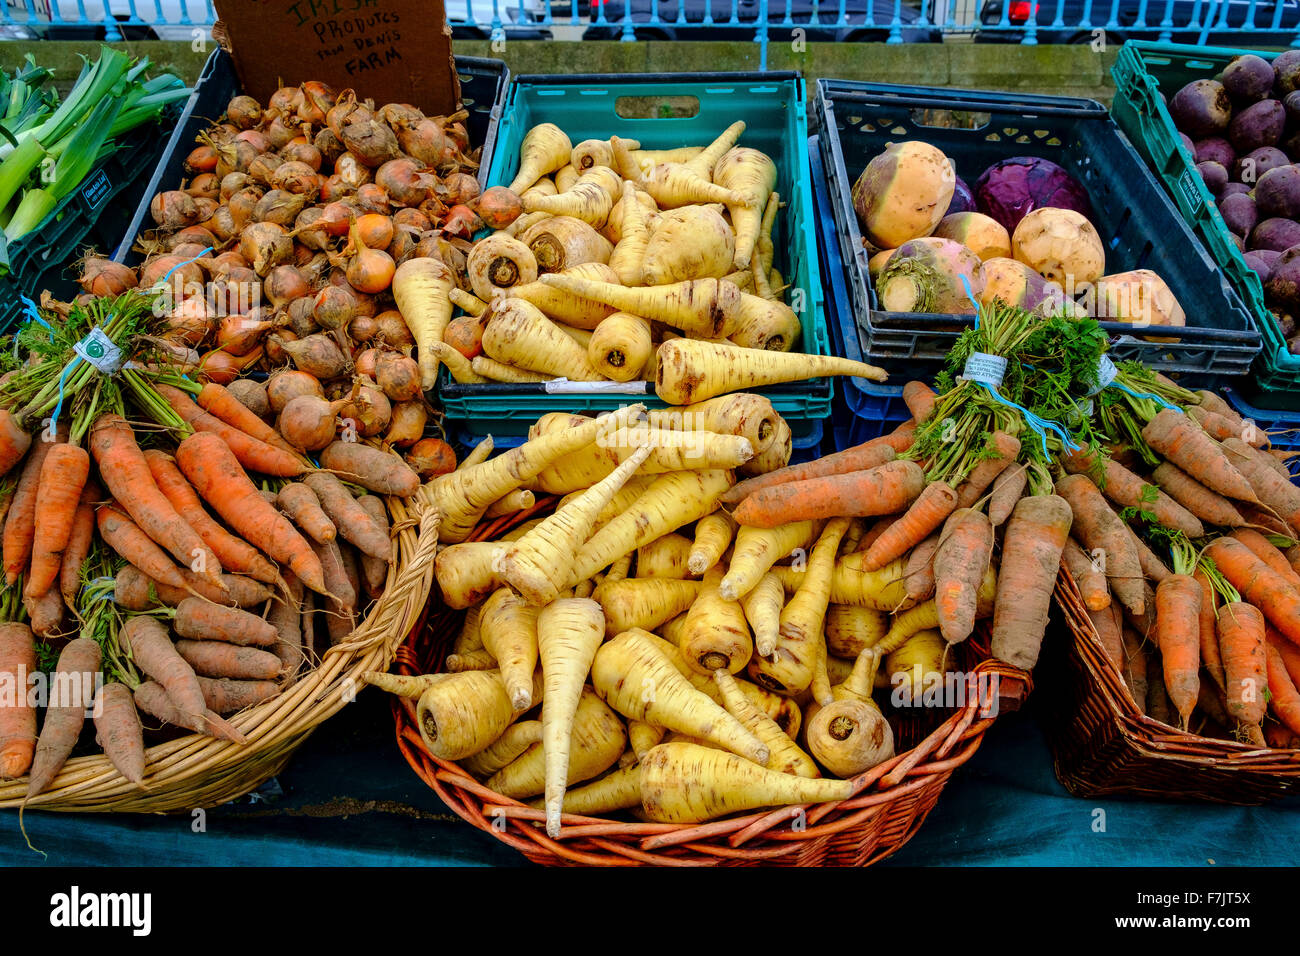 root vegetables carrot parsnip swede turnip onion - Stock Image